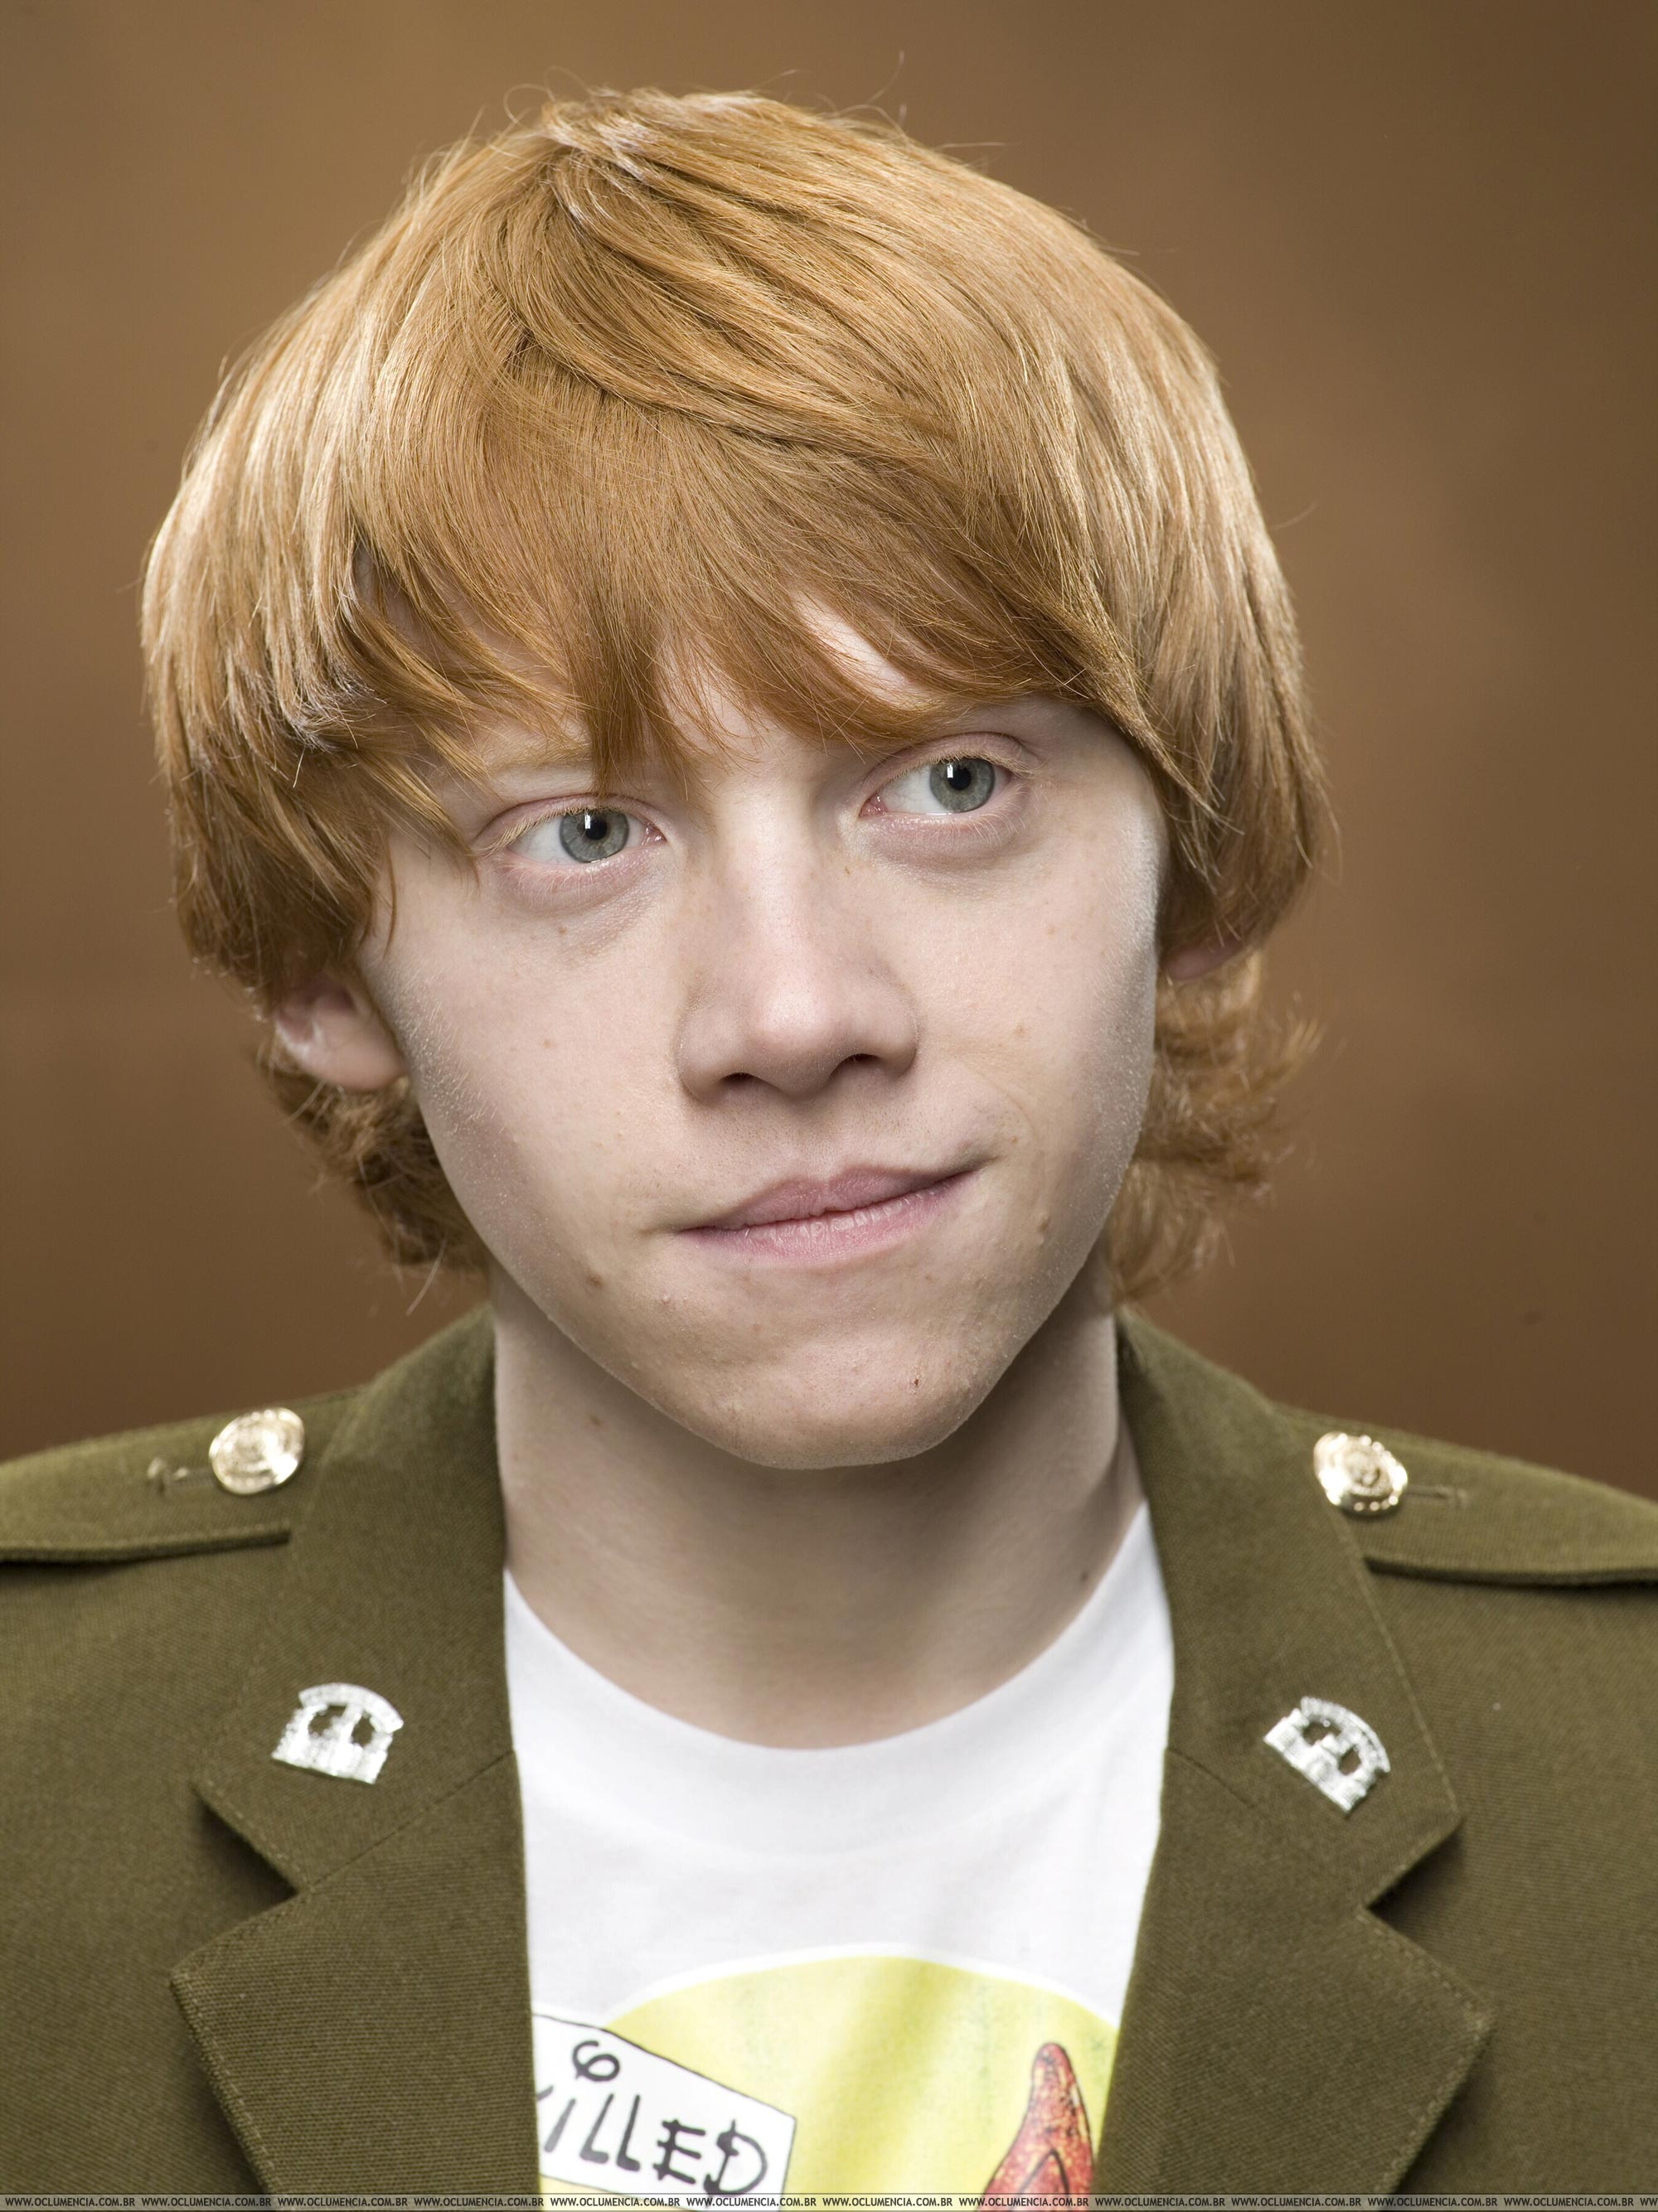 rupert grint instarupert grint instagram, rupert grint 2017, rupert grint films, rupert grint height, rupert grint and ed sheeran, rupert grint wikipedia, rupert grint facebook, rupert grint gif, rupert grint movies, rupert grint insta, rupert grint twitter, rupert grint 2015, rupert grint vk, rupert grint 2016, rupert grint official instagram, rupert grint wiki, rupert grint gif hunt, rupert grint biography, rupert grint official twitter account, rupert grint 2016 interview